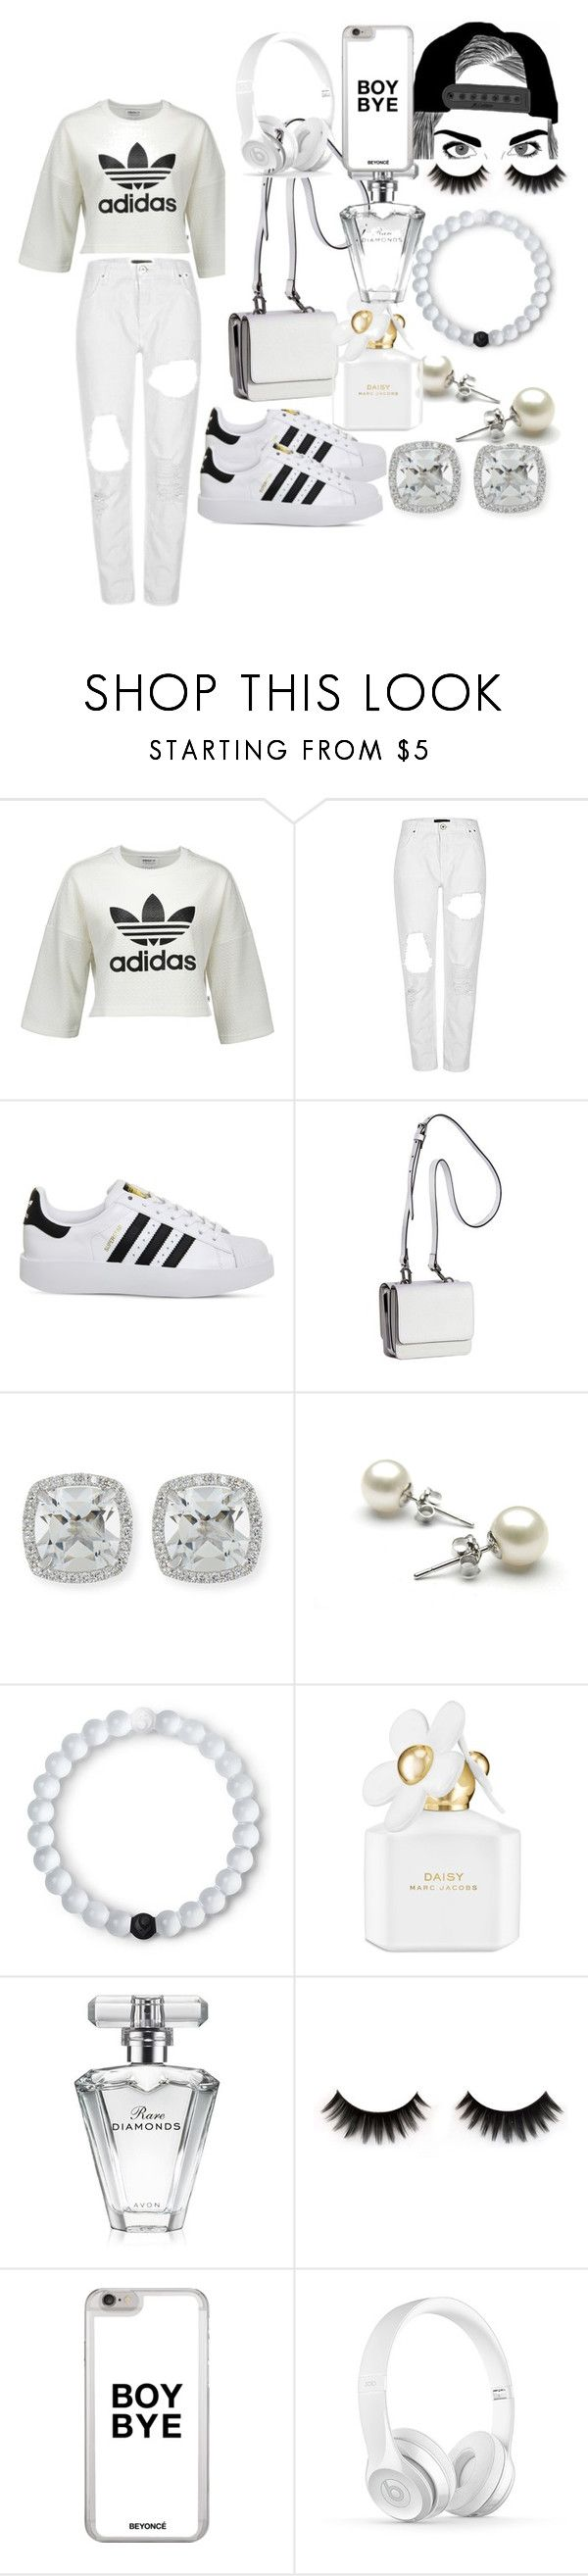 """Black&White (adida style)"" by kch-world ❤ liked on Polyvore featuring adidas, Kendall + Kylie, Frederic Sage, Lokai, Marc Jacobs and Avon"